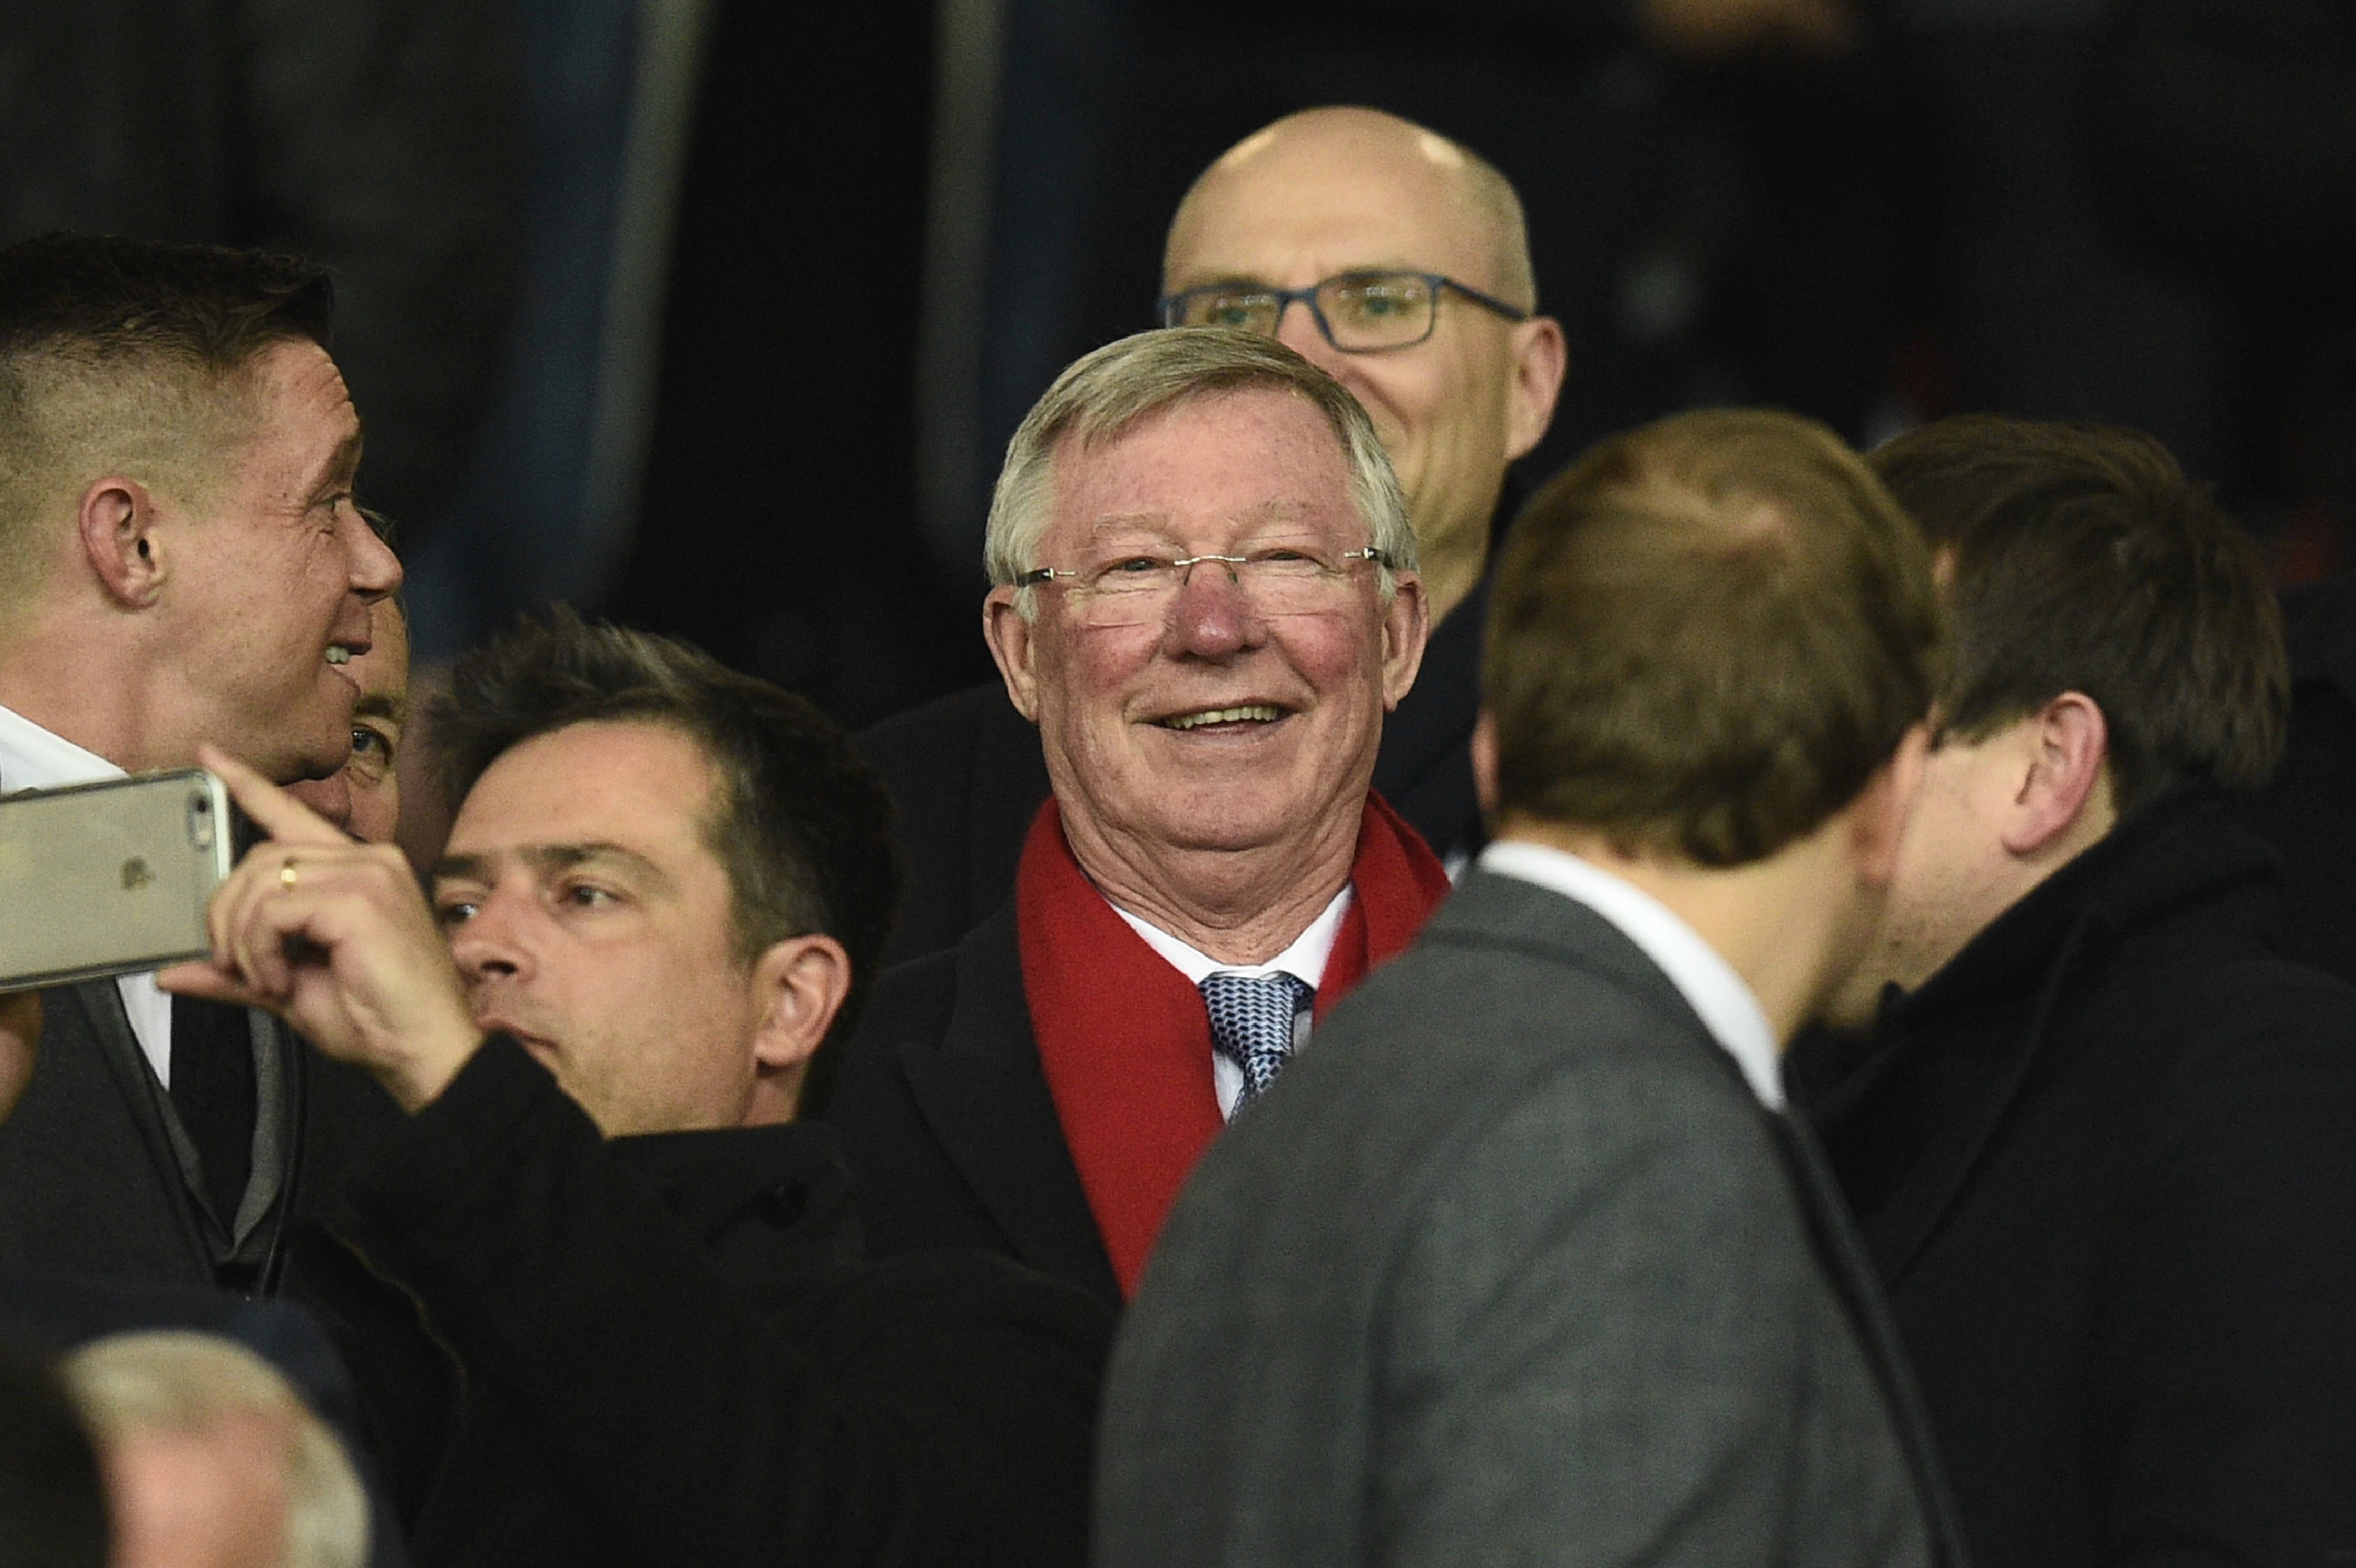 Sir Alex Ferguson reveals he was nervous before making return to Old Trafford